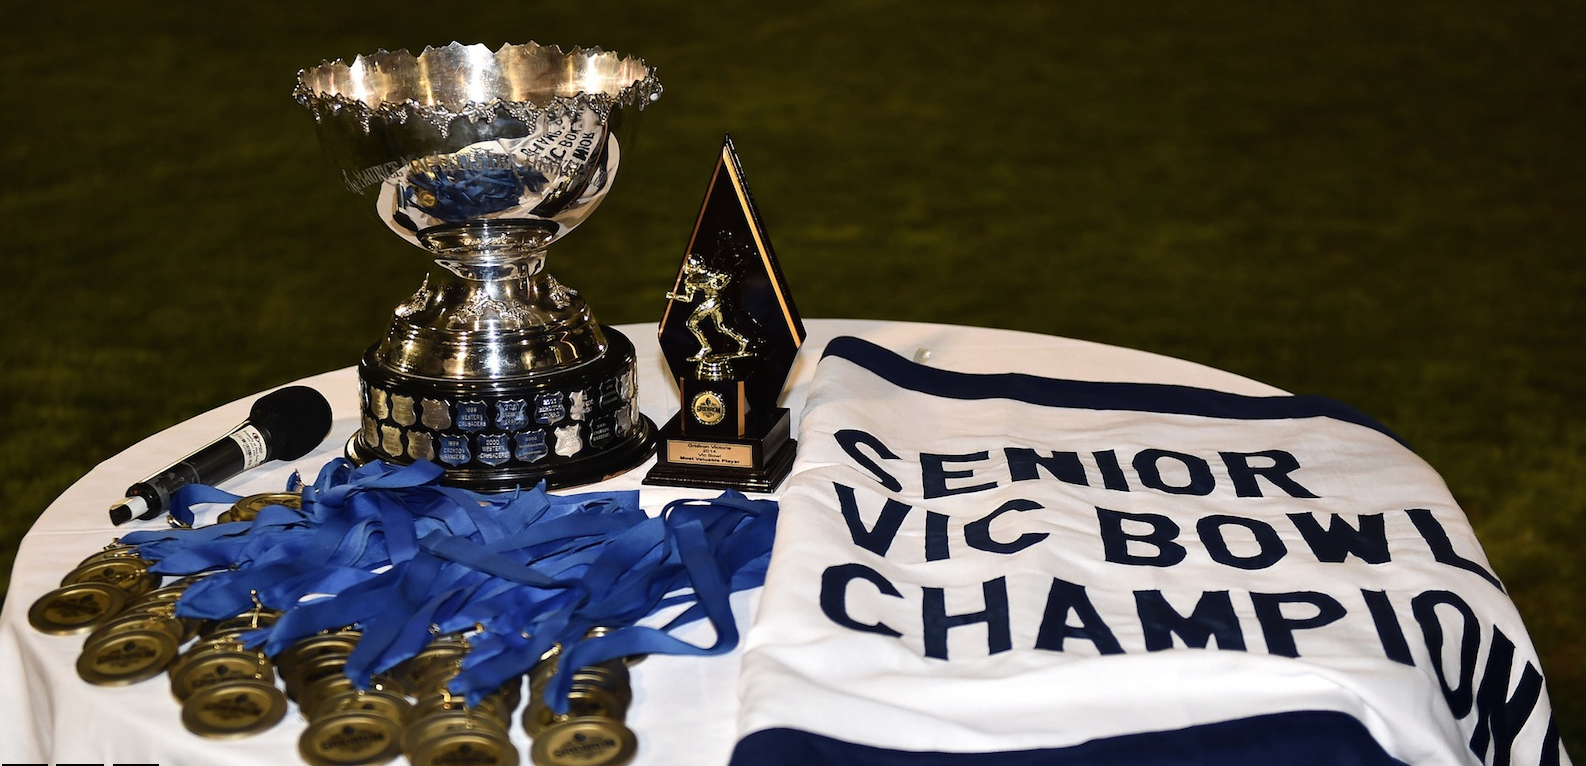 Vic Bowl, Medallions and Penant awaiting their Champions (Photo courtesy of barendphotos.com)